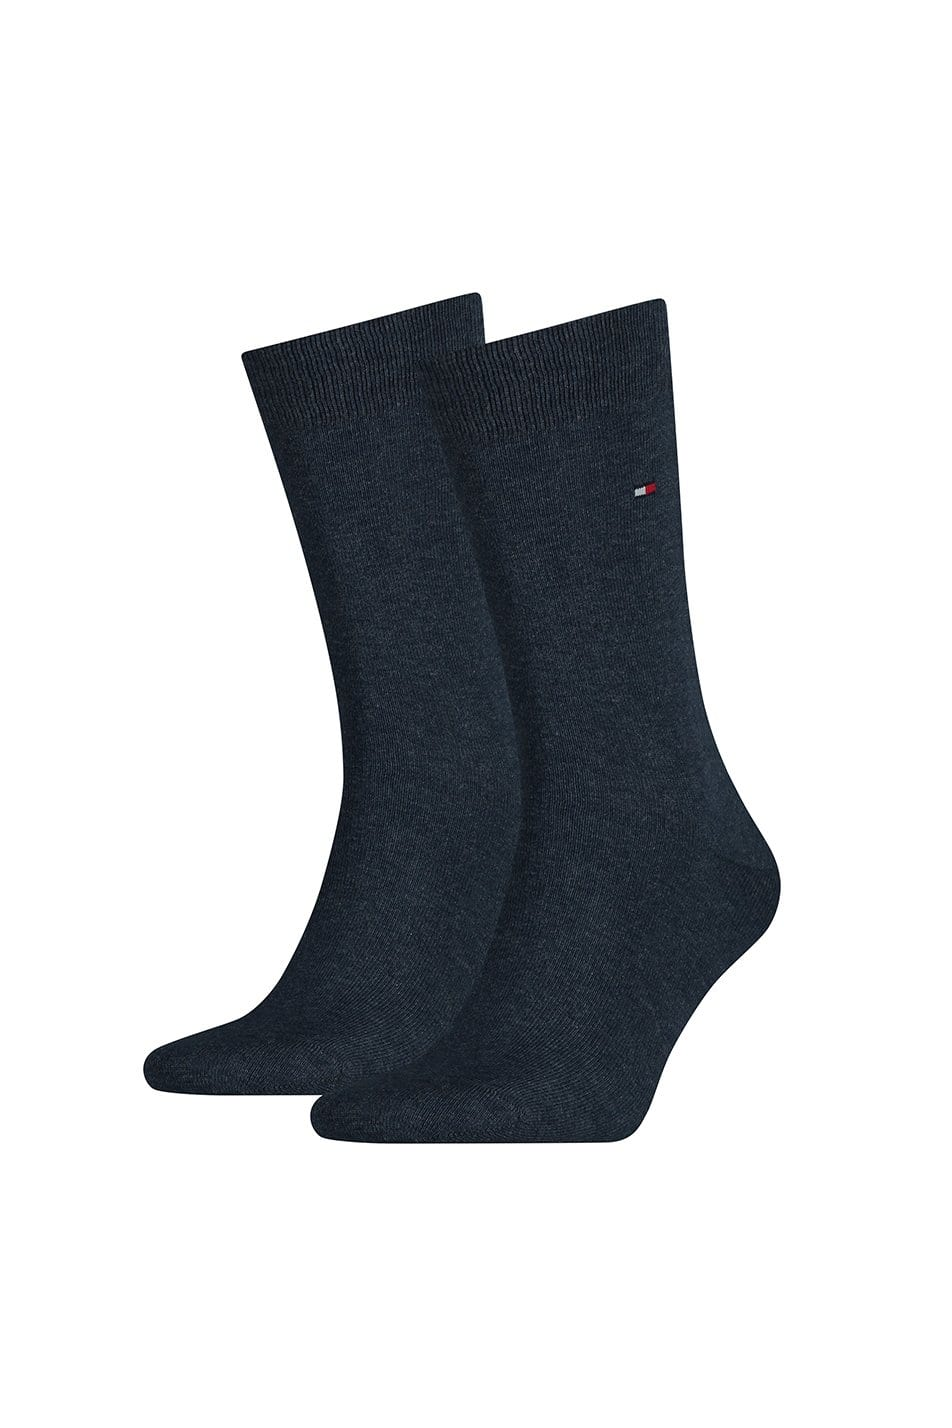 Tommy Hilfiger 2 Pack Classic Socks